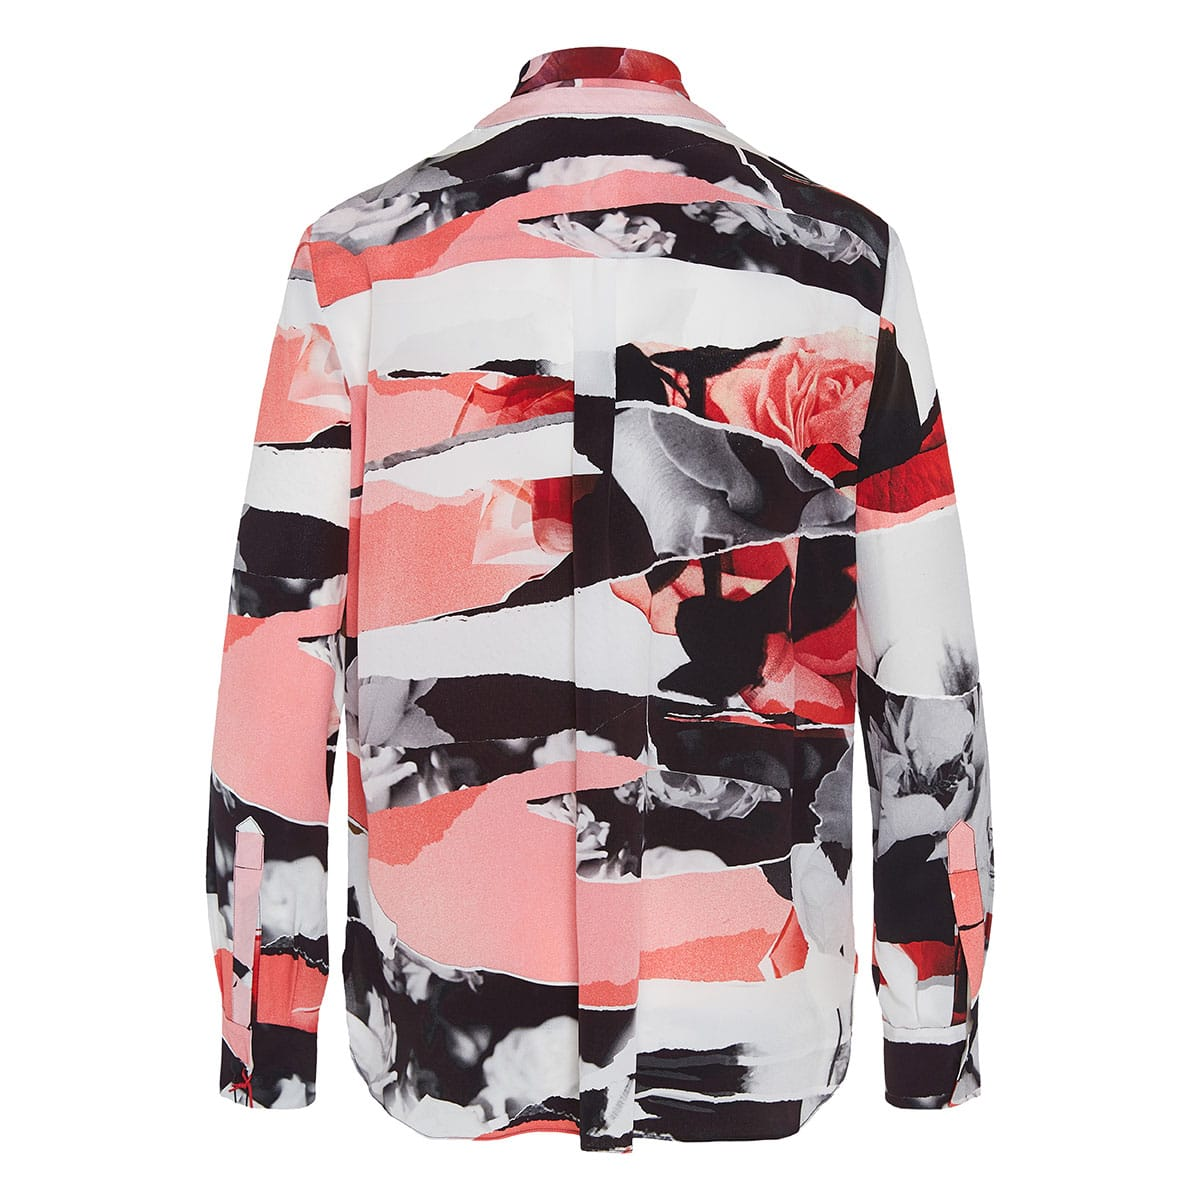 Bow-tie printed silk shirt